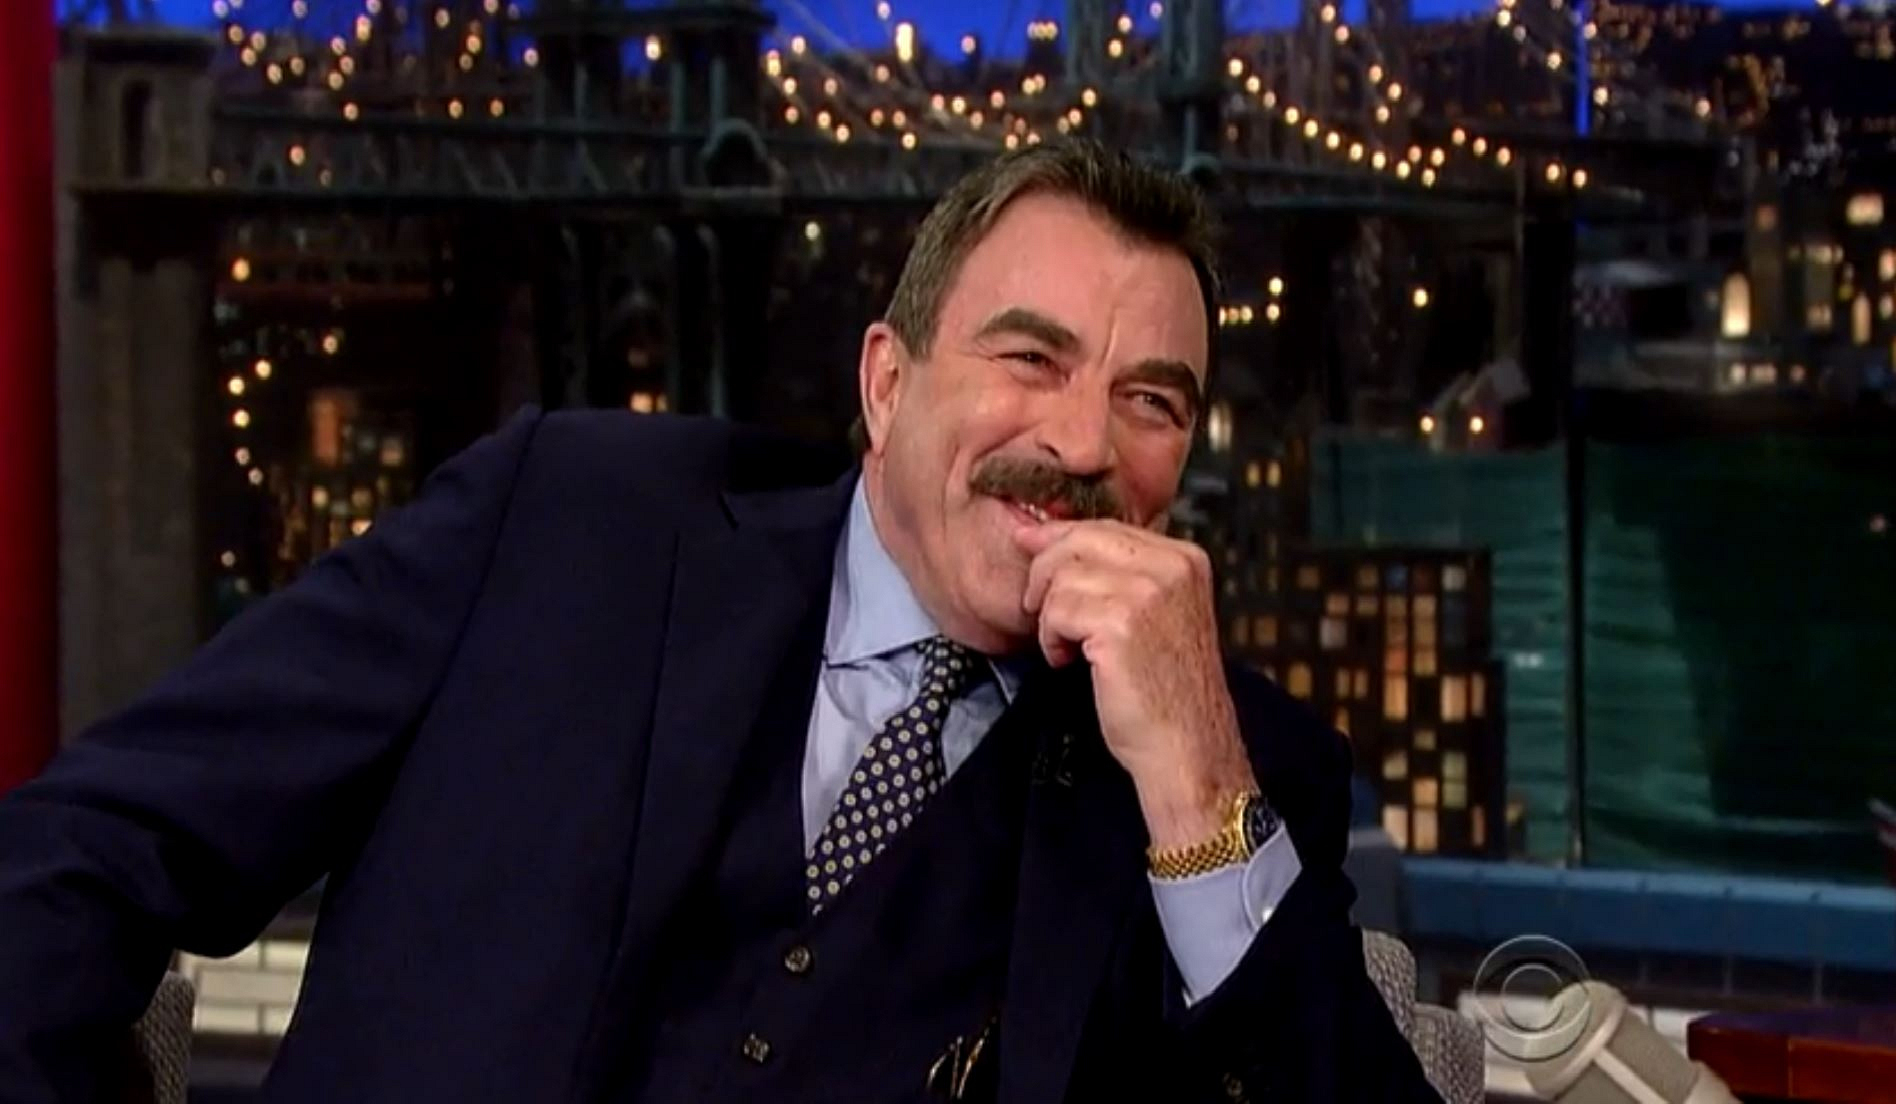 7. Tom Selleck has never beaten up anyone in real life -- only on TV.